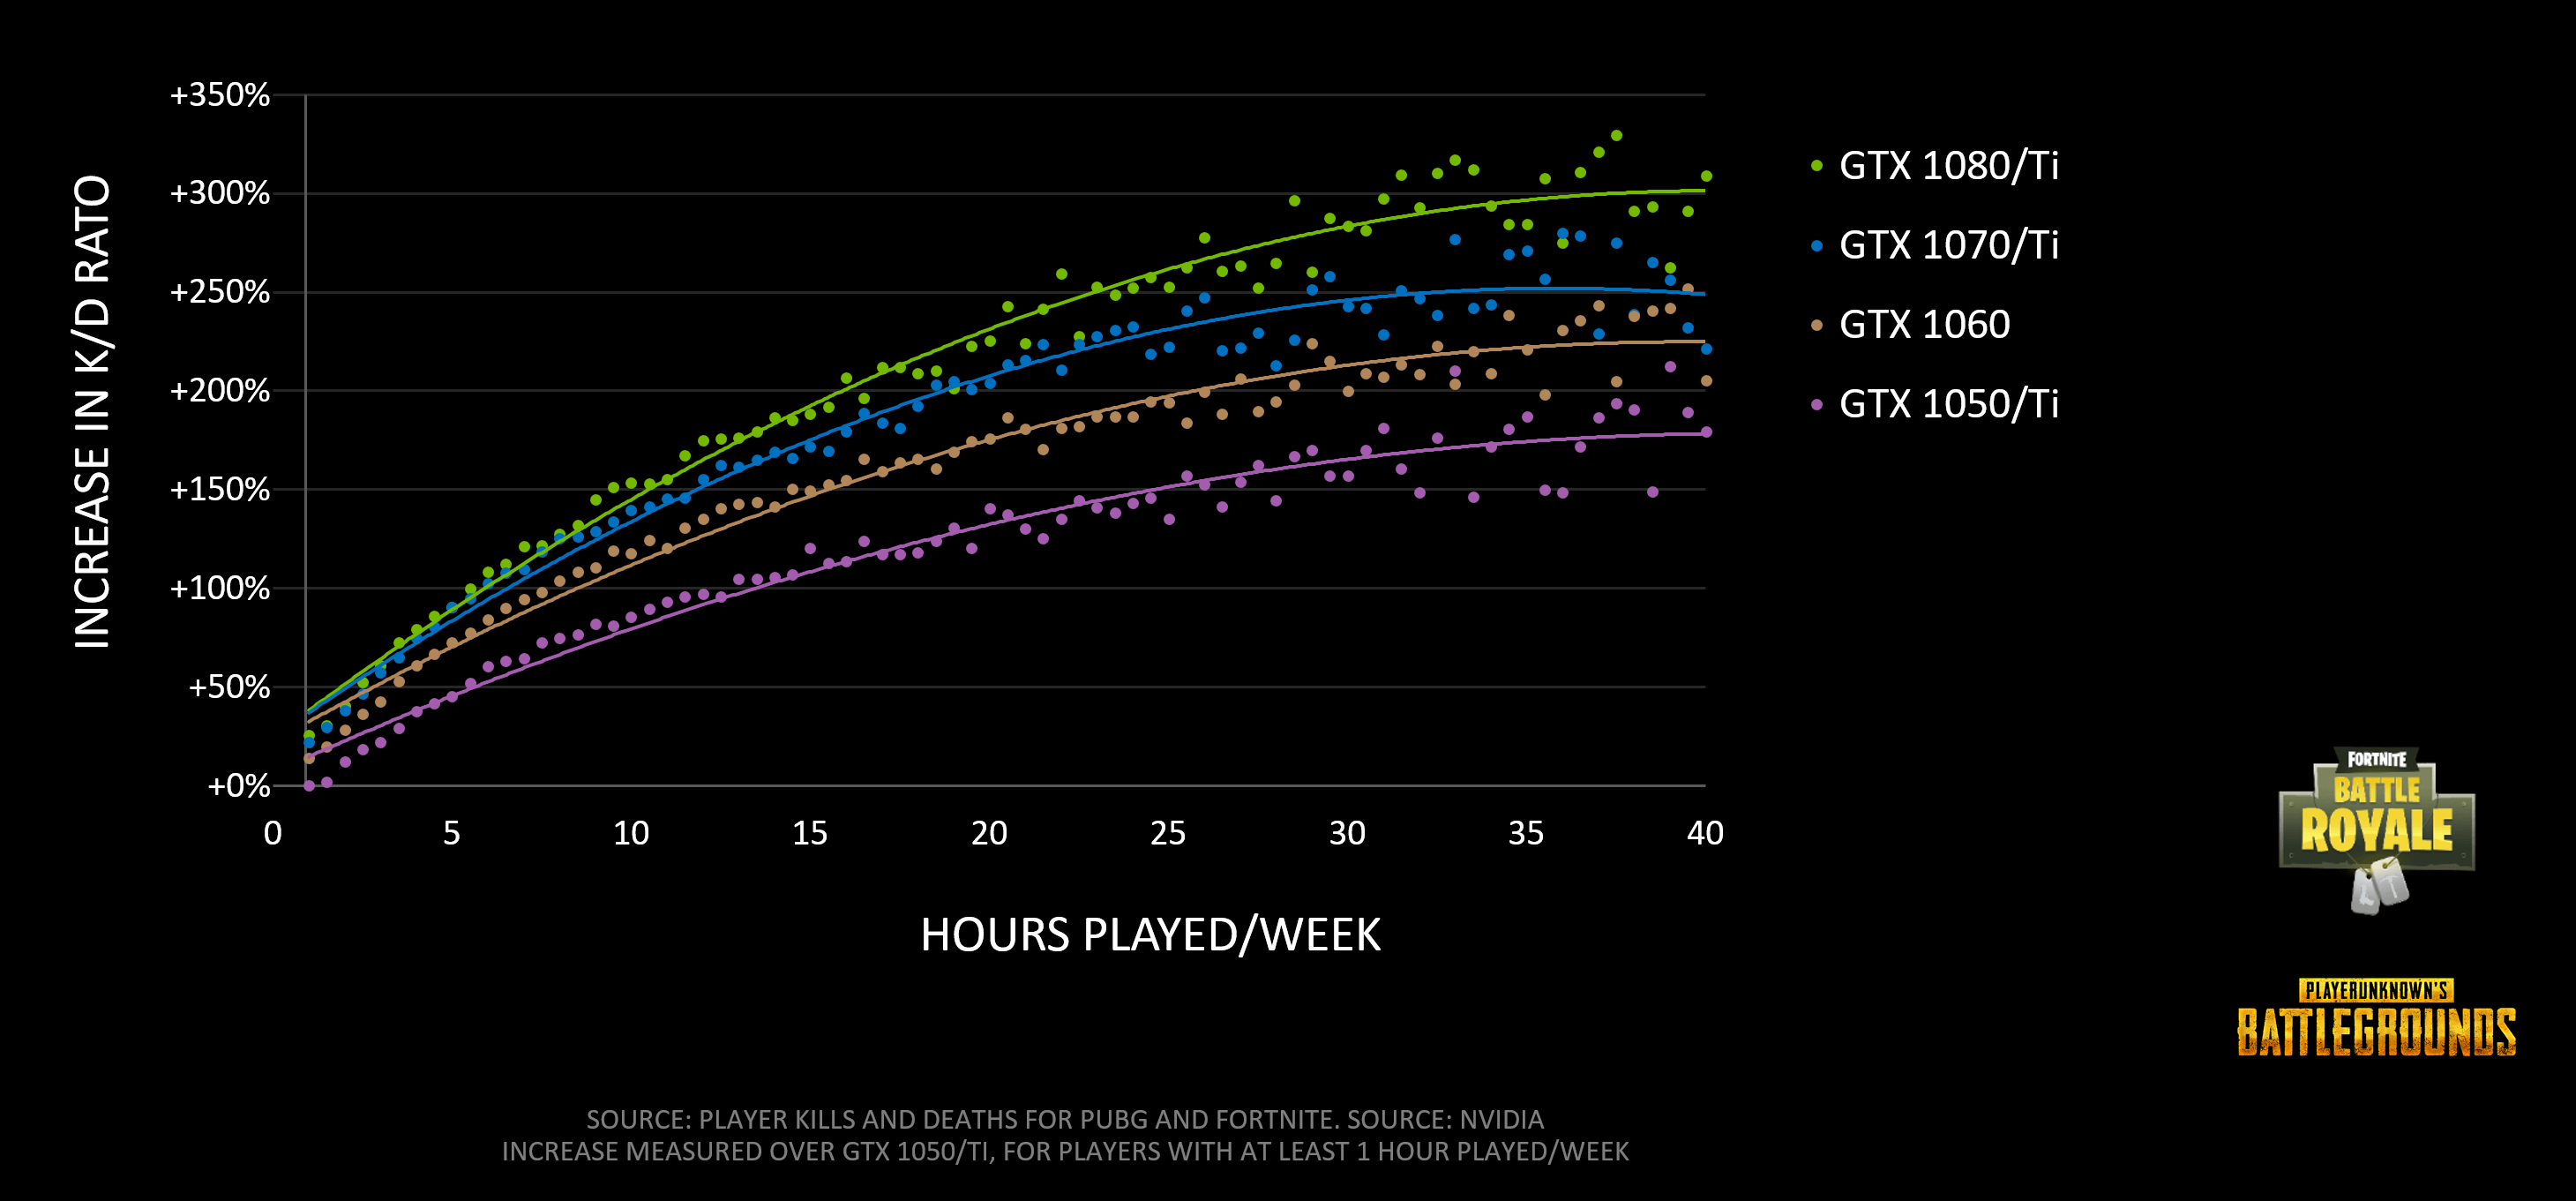 battle royale fortnite pubg increase in kd hours